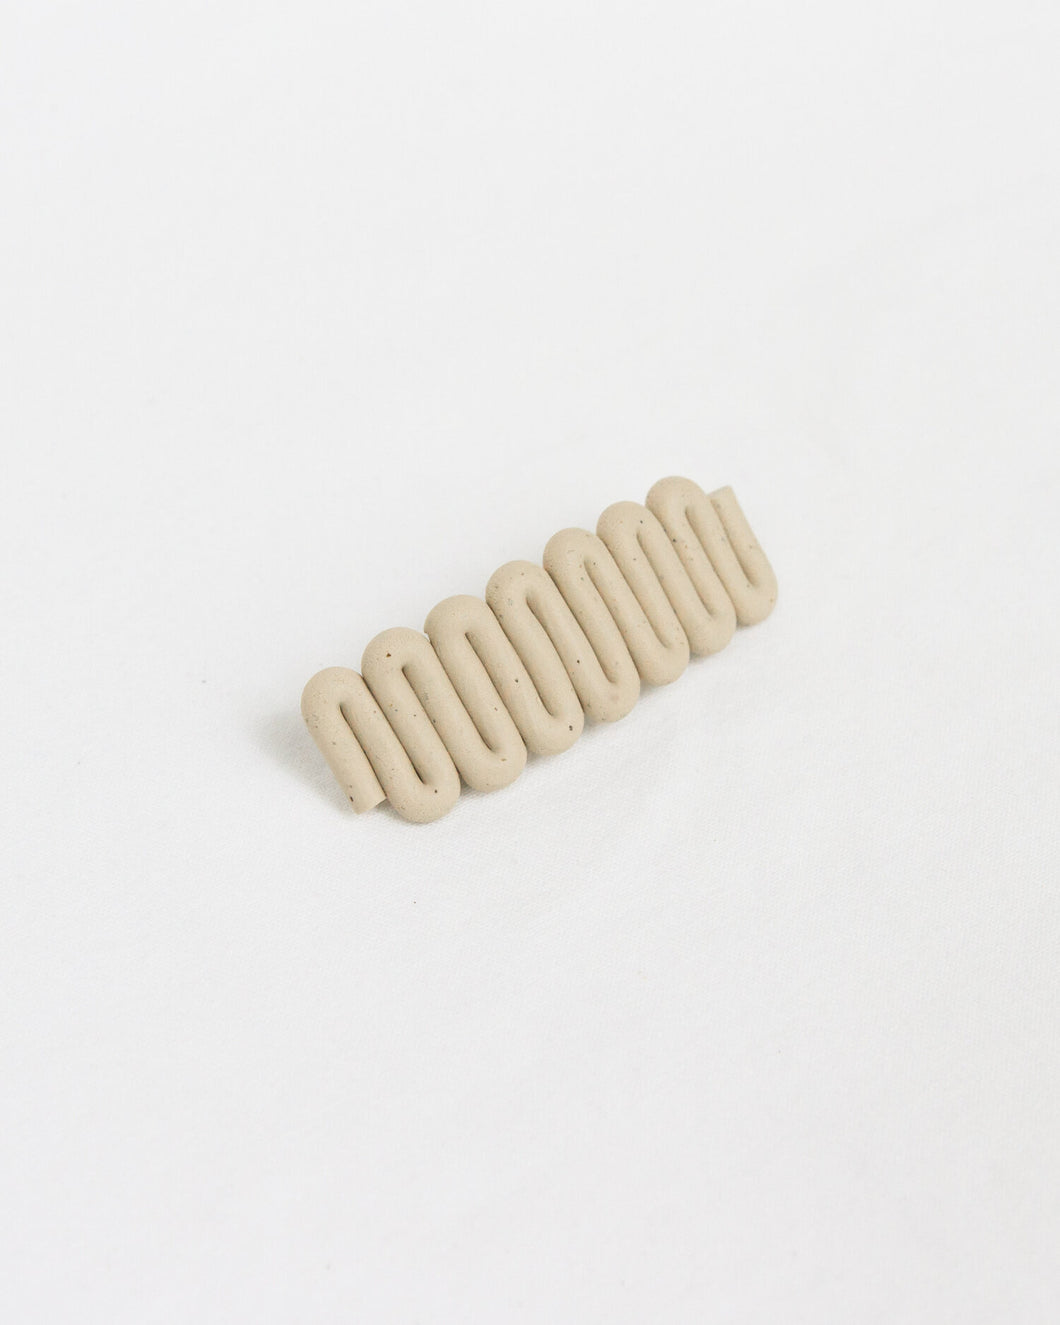 clay barrette in oat